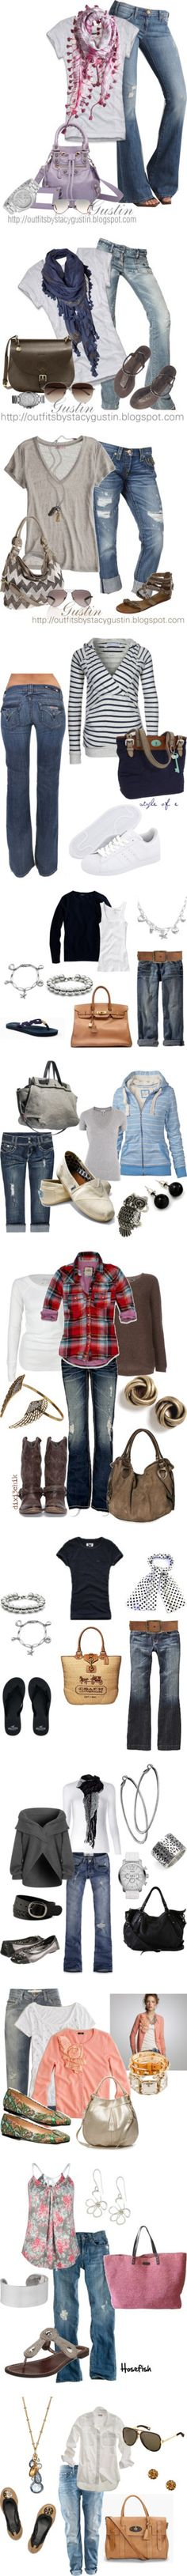 """""""Casual jean outfits"""" by islandktty on Polyvore"""